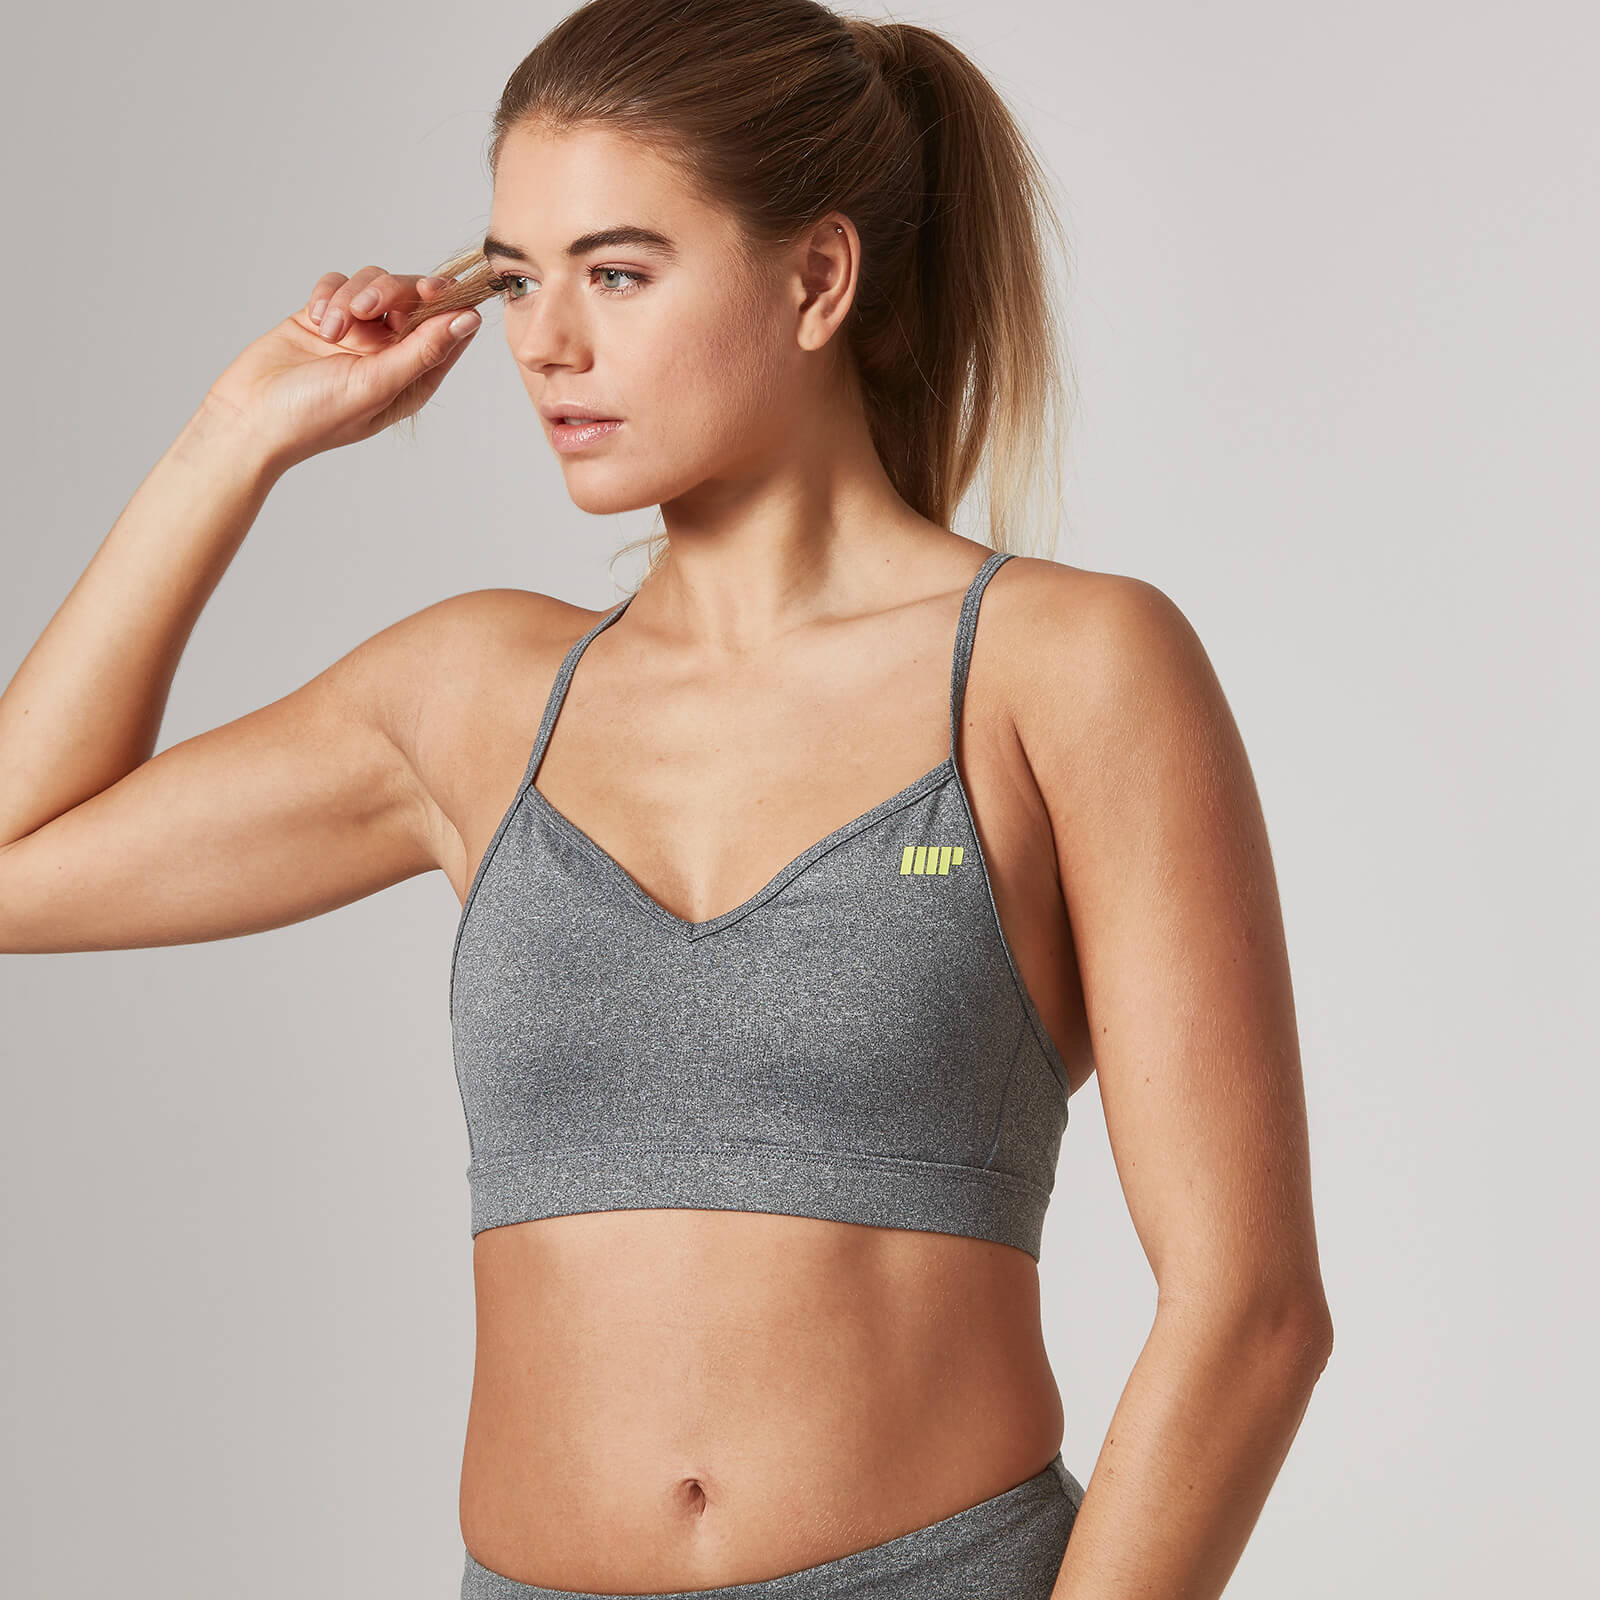 Myprotein Heartbeat Sports Bra - Grey, XL